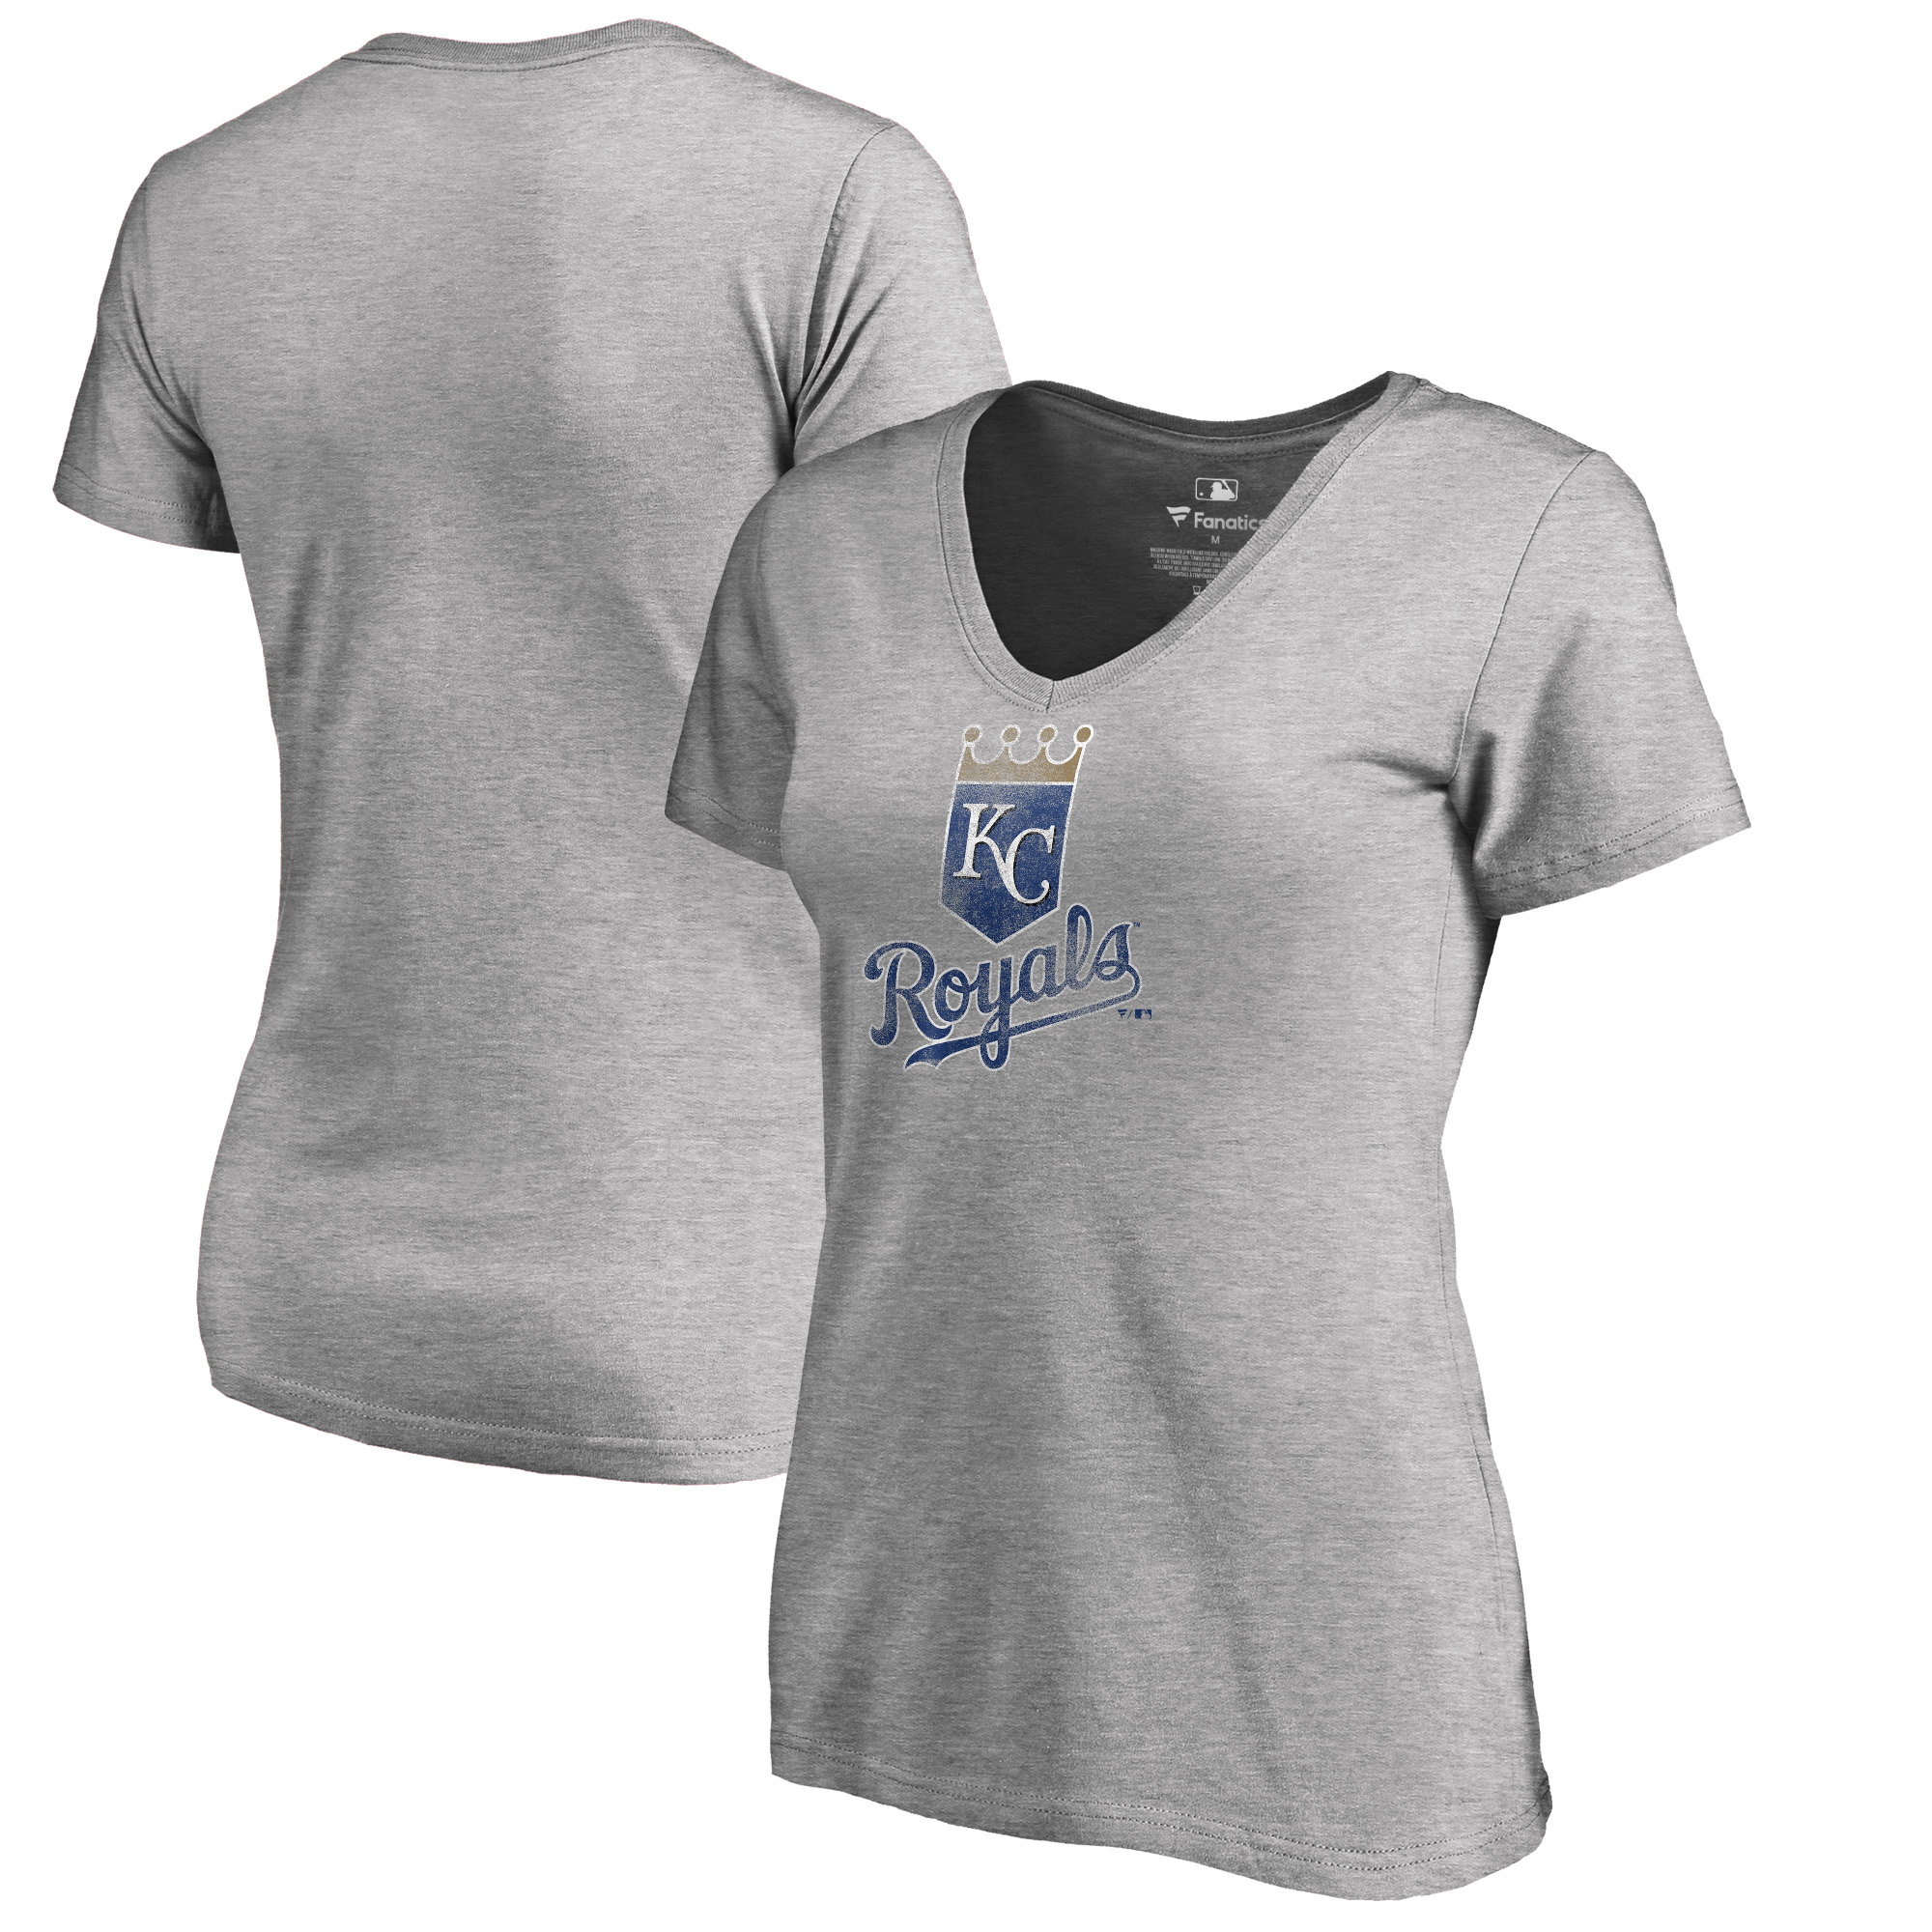 Kansas City Royals Fanatics Branded Women's Plus Size Distressed Team V-Neck T-Shirt - Heathered Gray